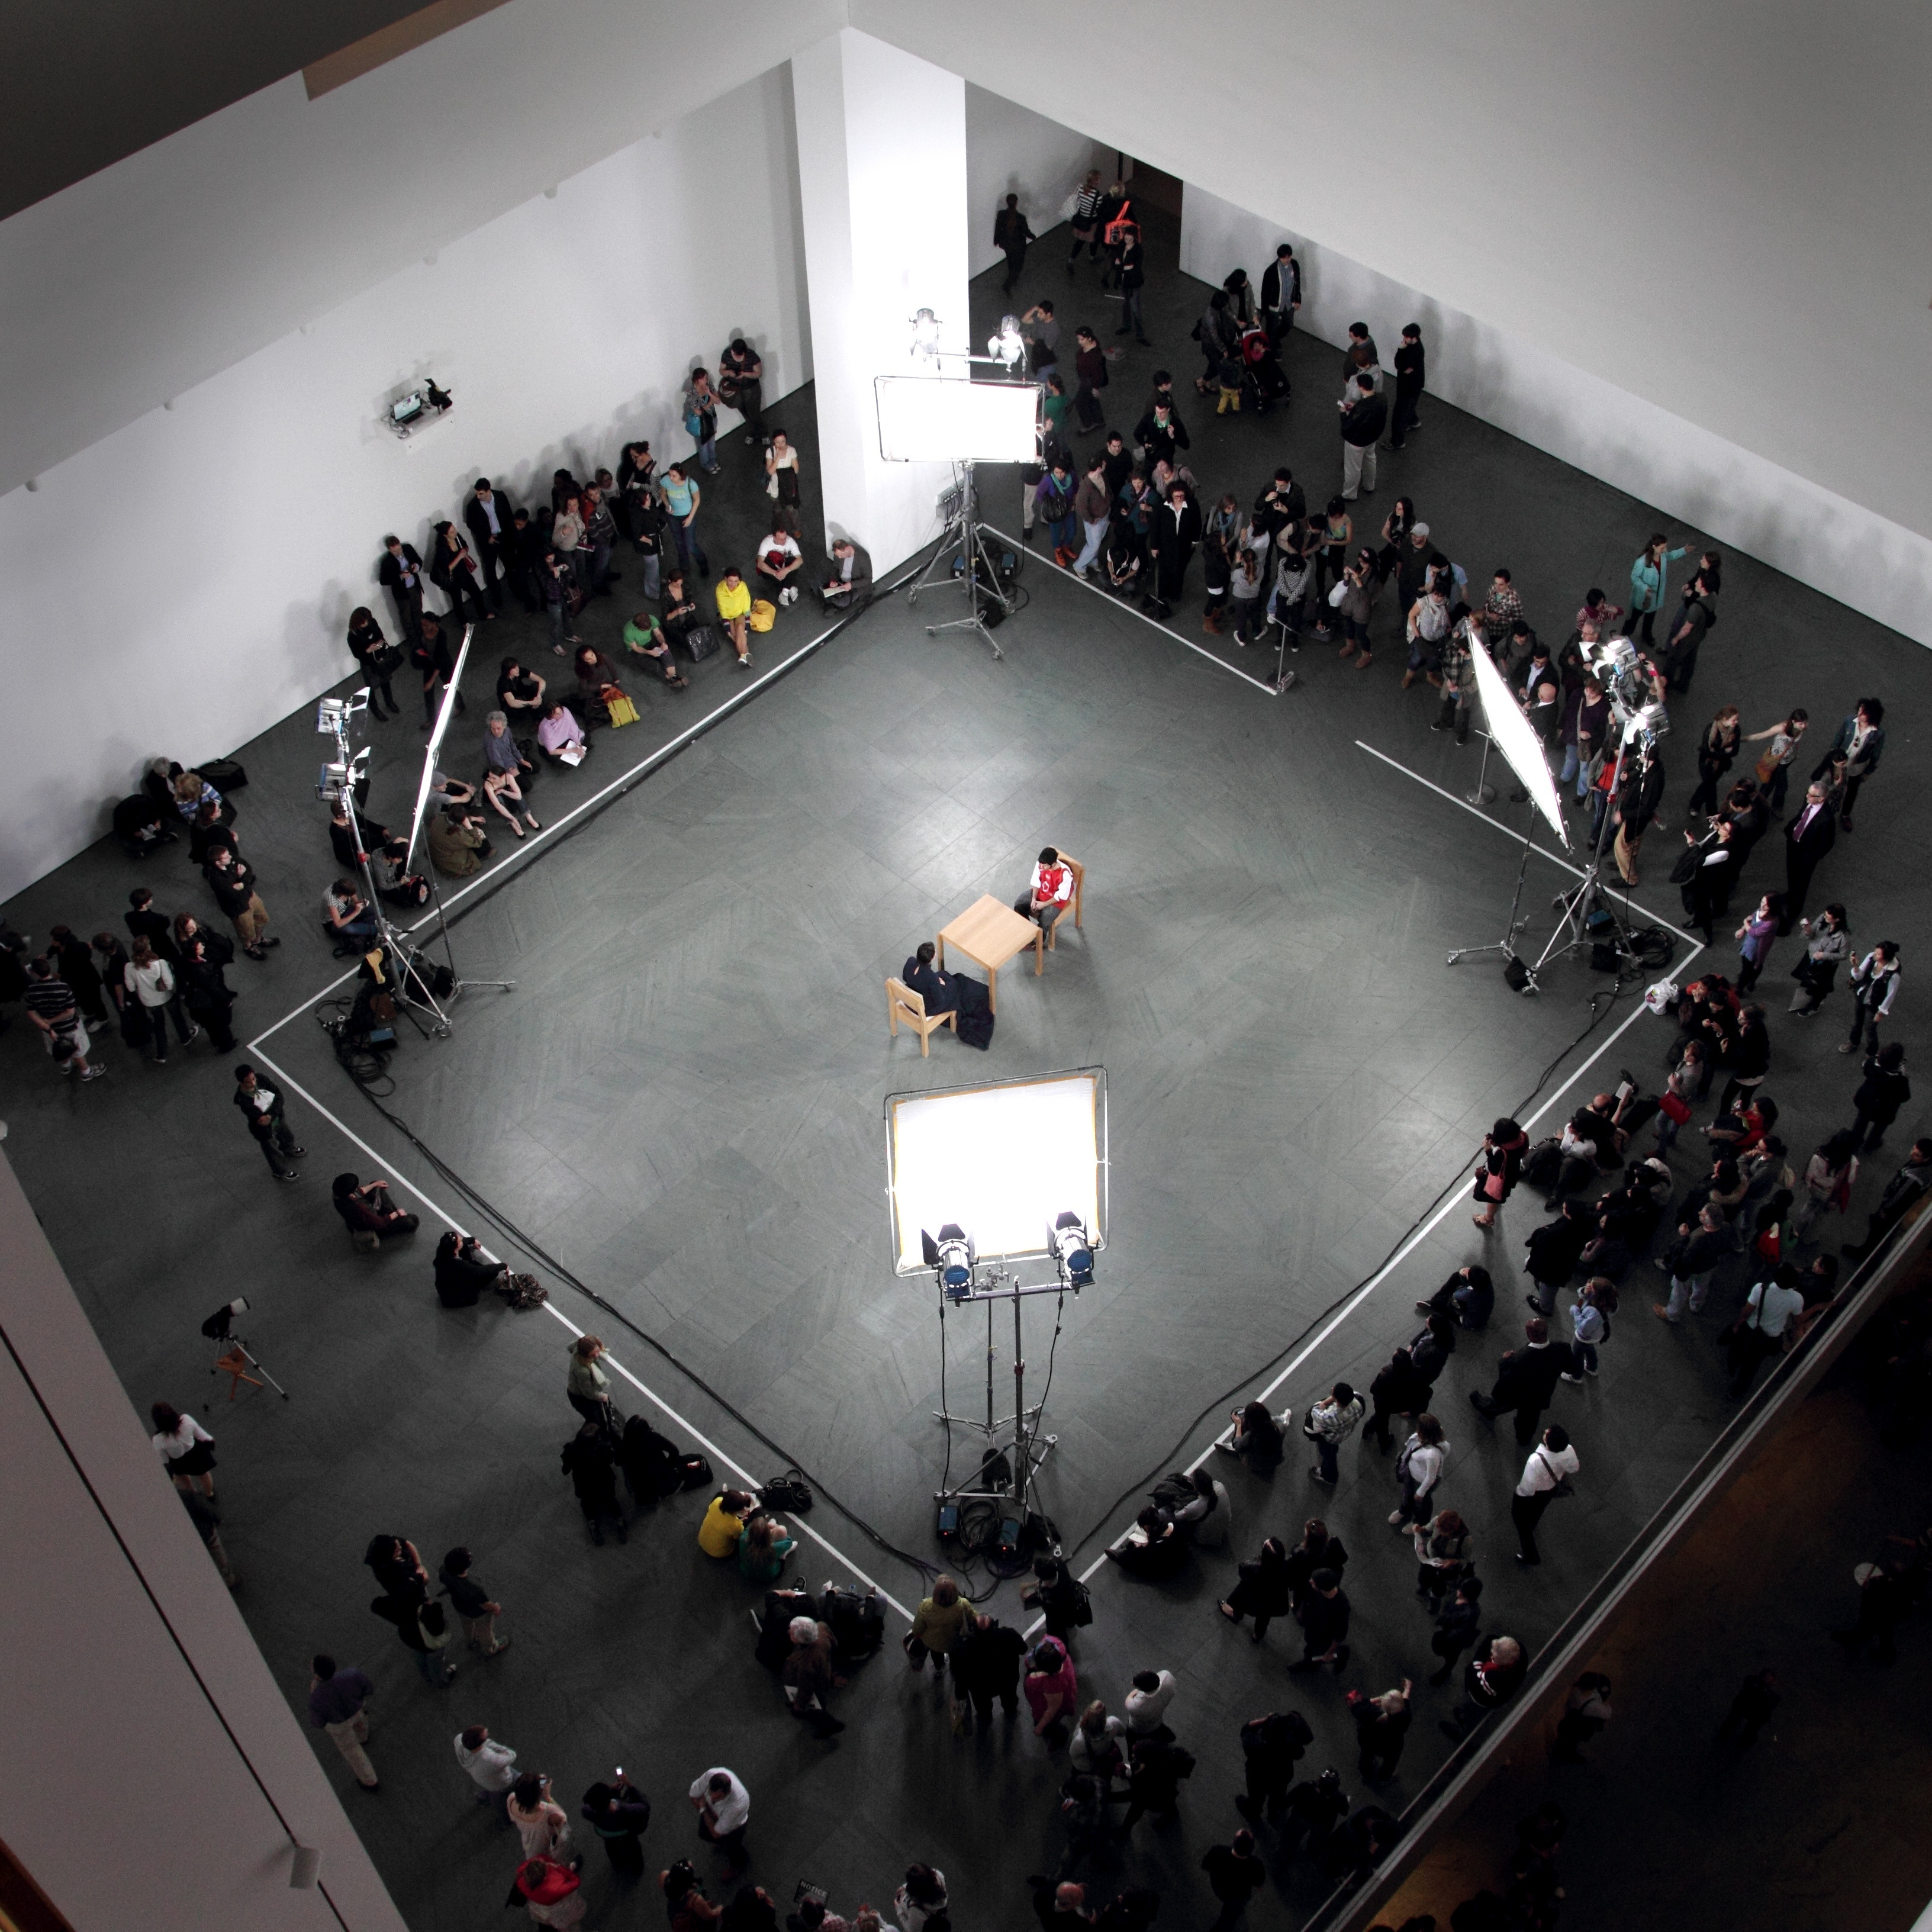 How much did it cost to go the Marina Abramovic: The Artist Is Present at MOMA?